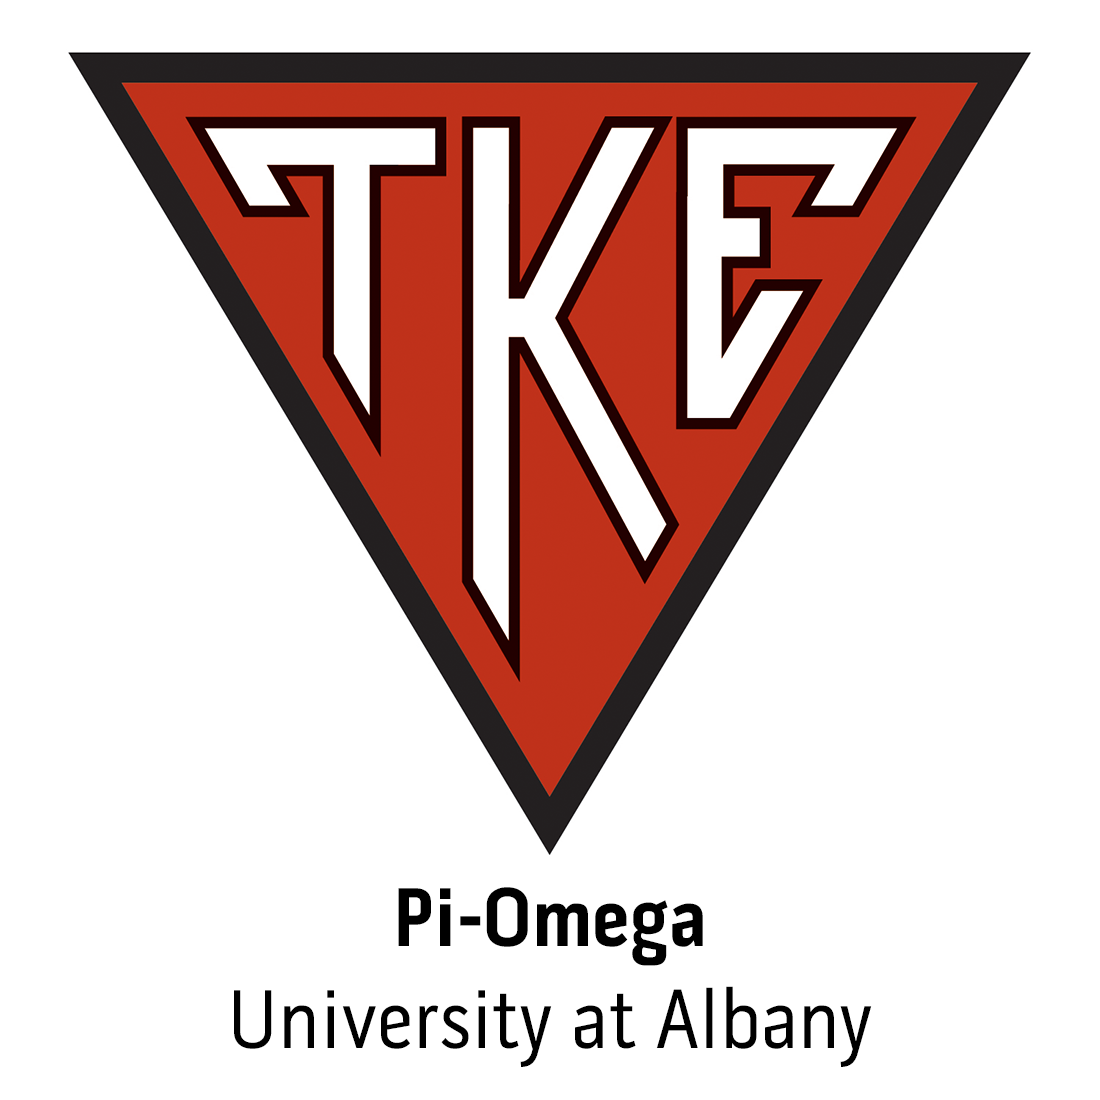 Pi-Omega Chapter at University of Albany-SUNY